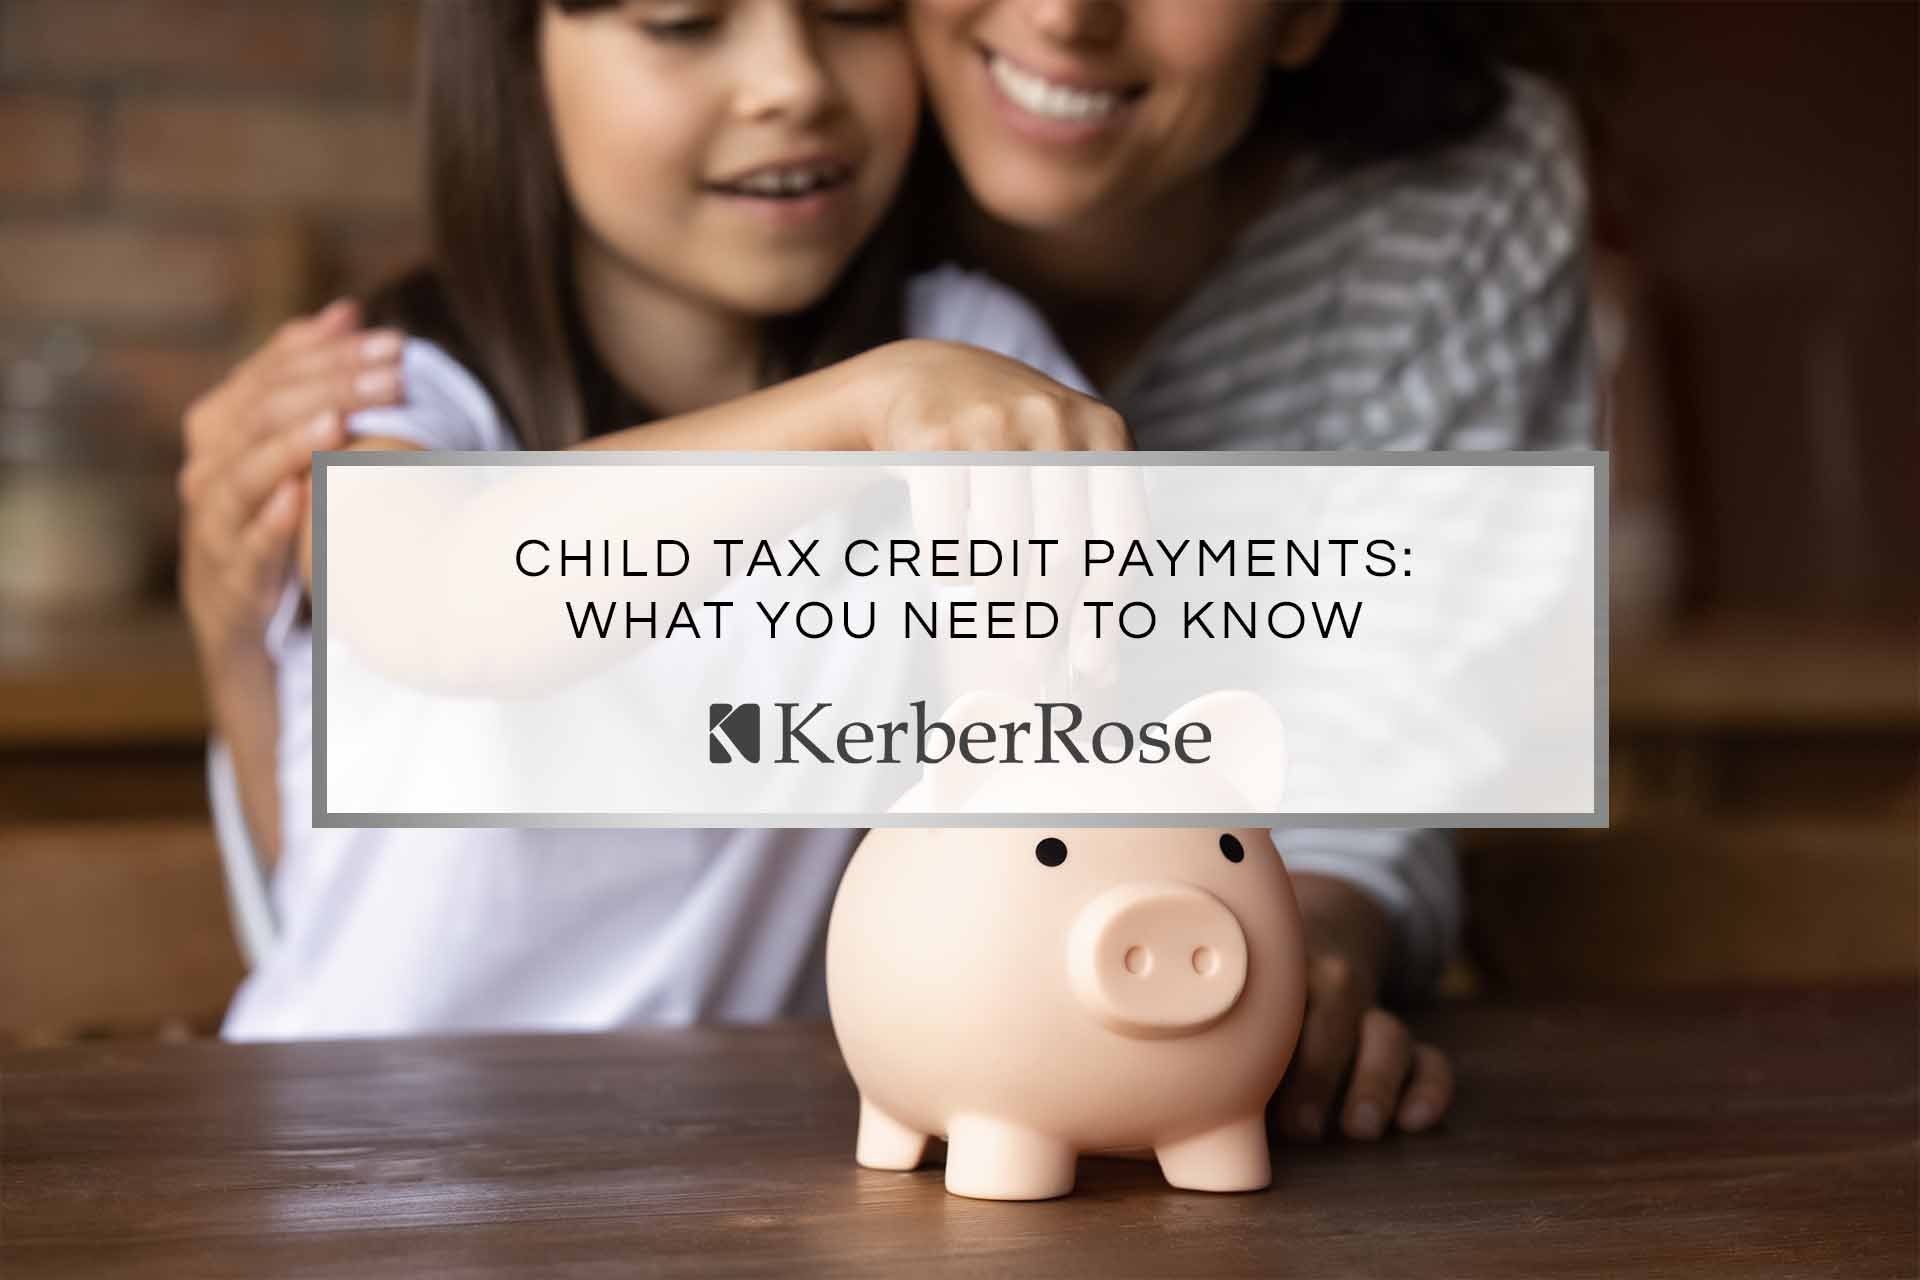 Child Tax Credit Payments- What You Need to Know